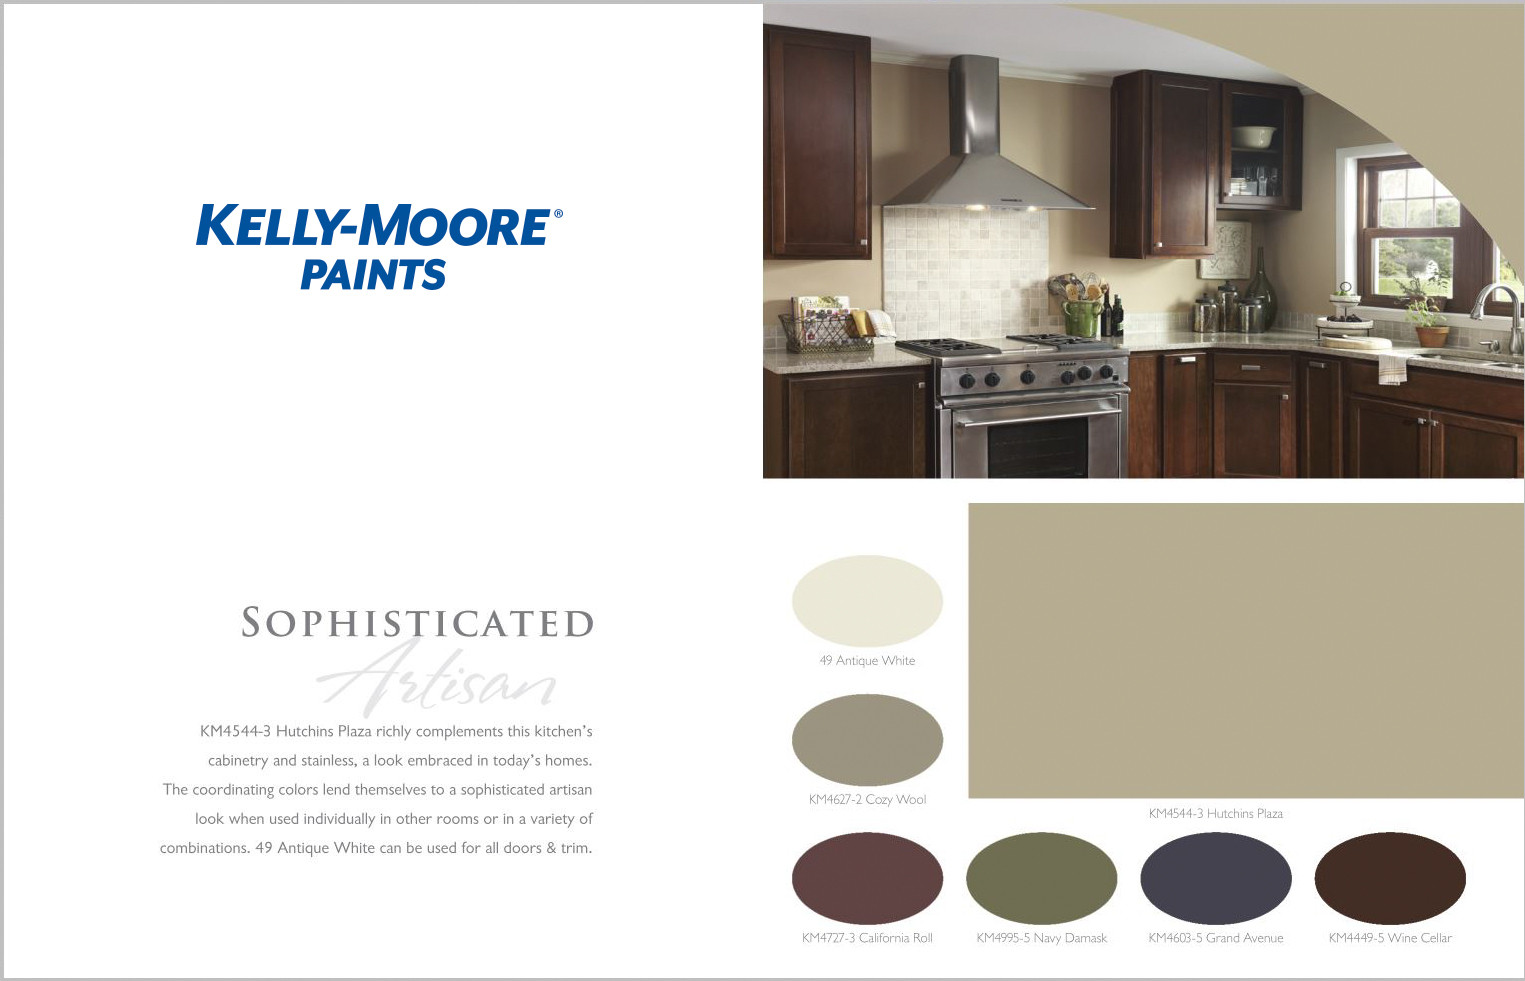 Best ideas about Kelly Moore Paint Colors . Save or Pin kelly moore paint colors interior Now.